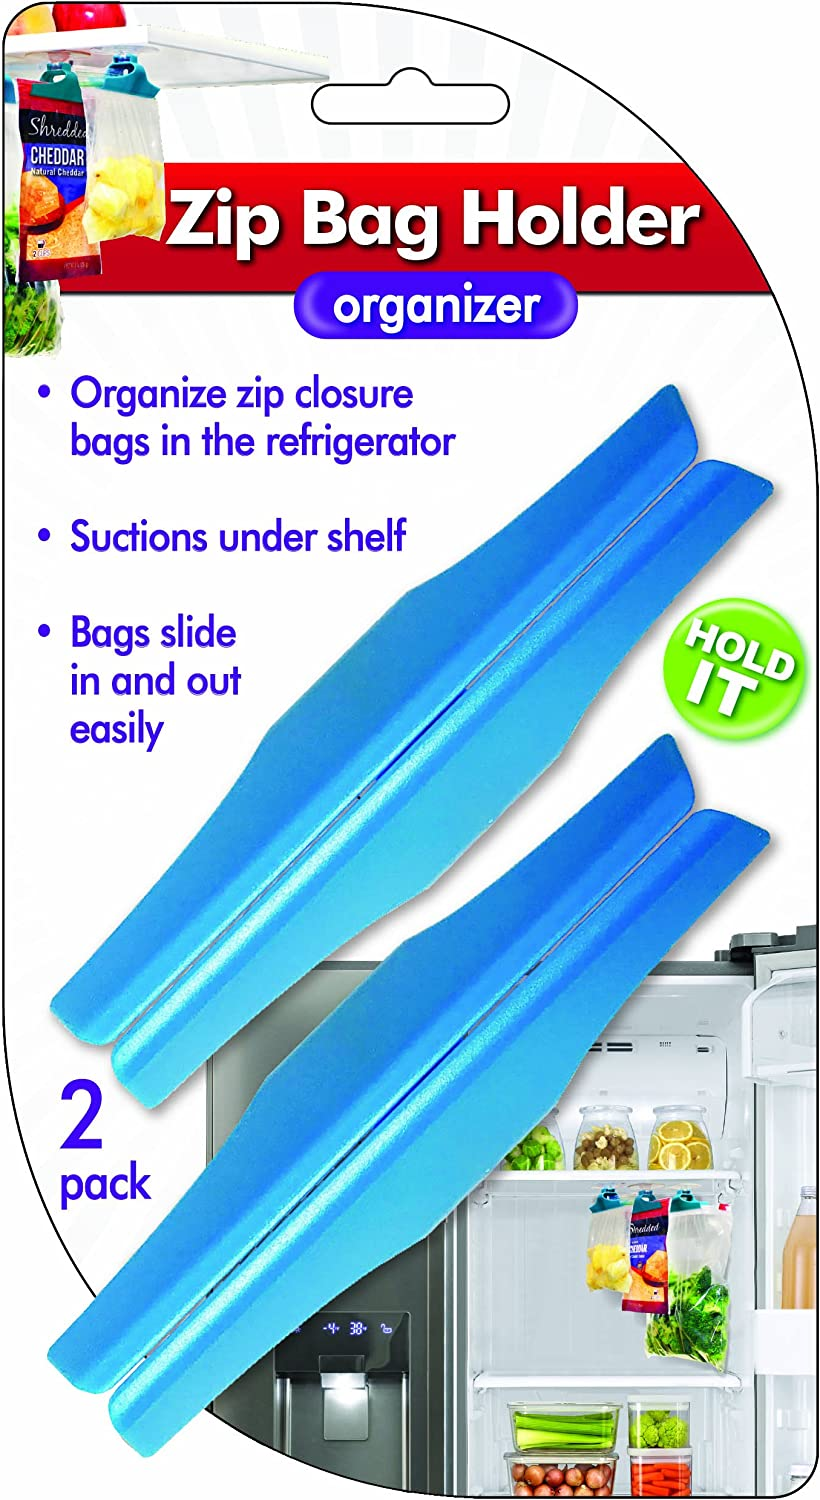 Zip Bag Holder, Best Fridge Storage Hack - Suction Cups Hold Baggies Under Refrigerator Shelves for Easy Removal, Just Slide In or Out of Clip, Holds Up to One Gallon Zip or Freezer Baggy (2 pack)